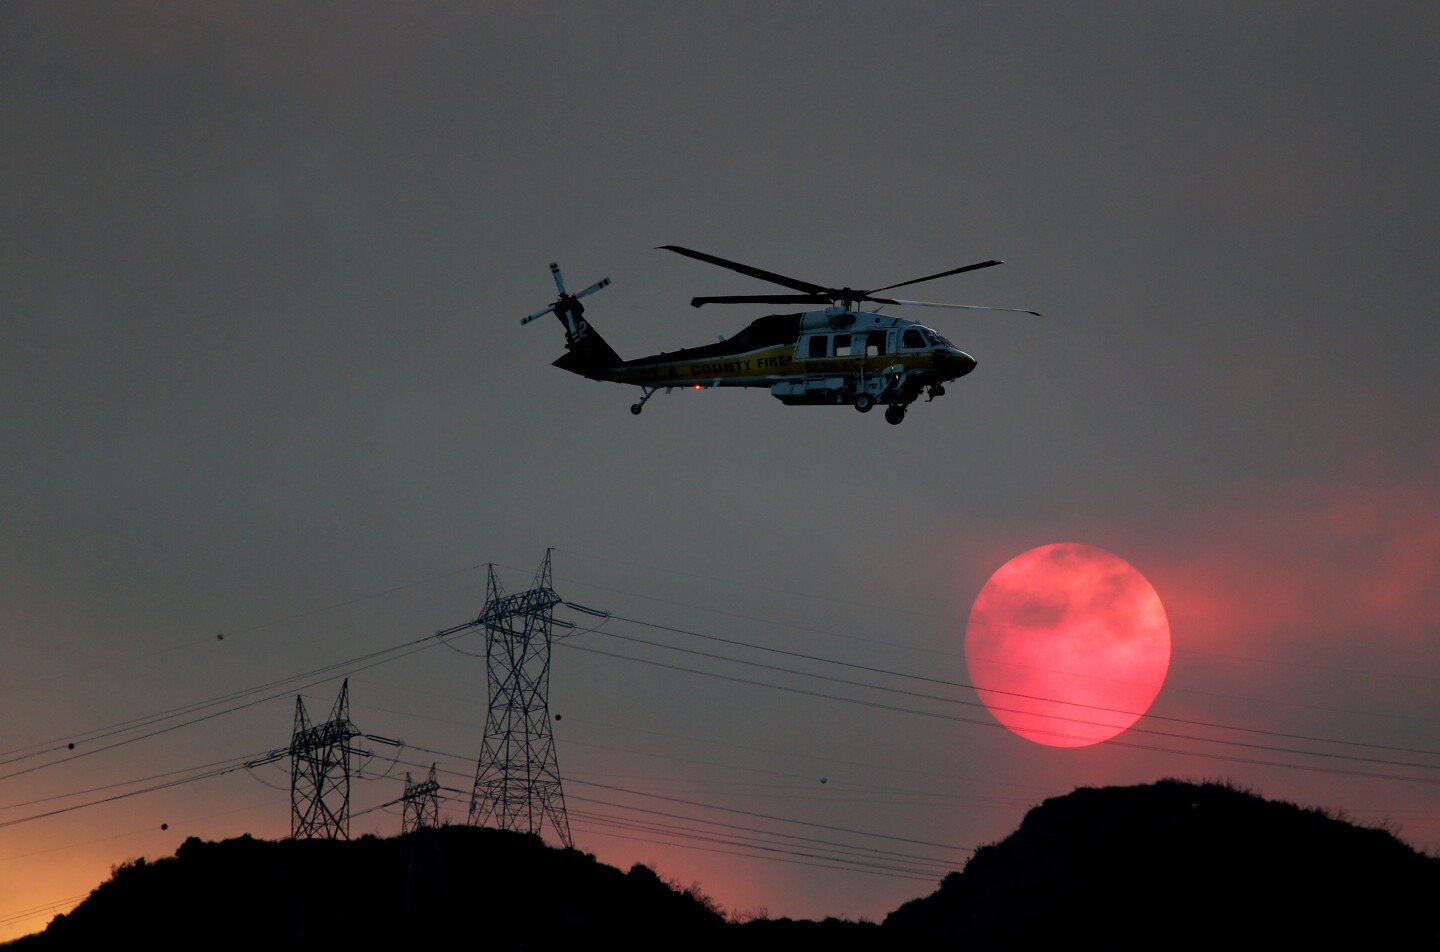 A firefighting helicopter makes an approach to drop water on the Ranch fire